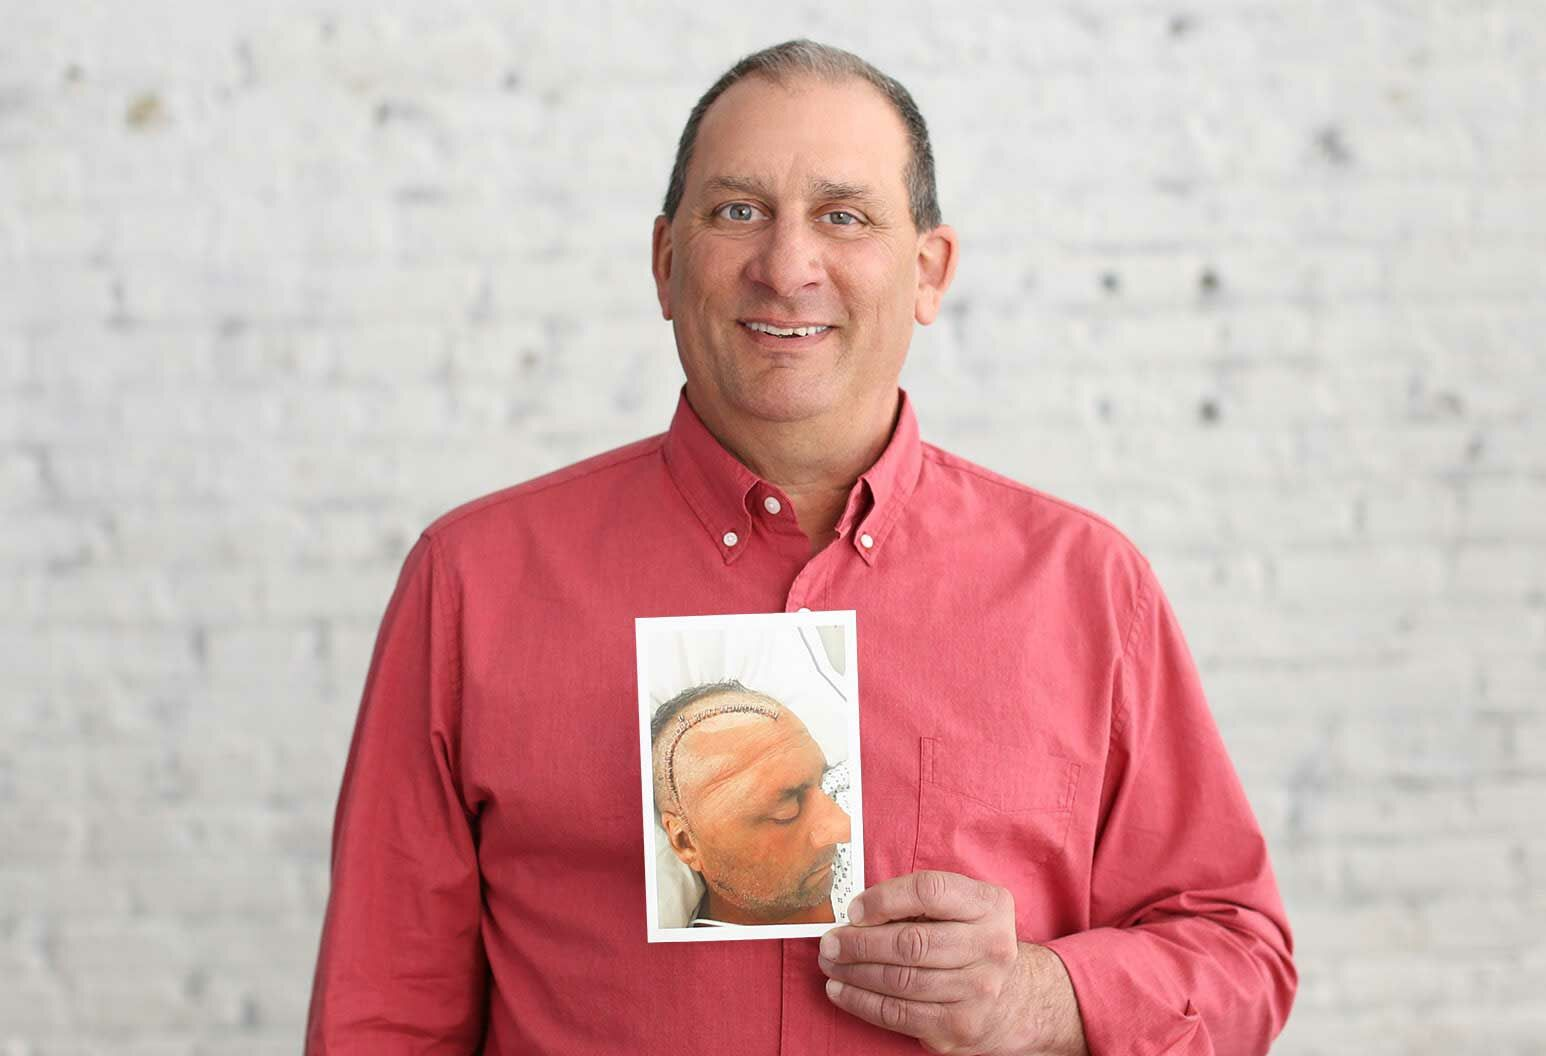 Patient in a coral colored shirt holding an image of himself after brain surgery.